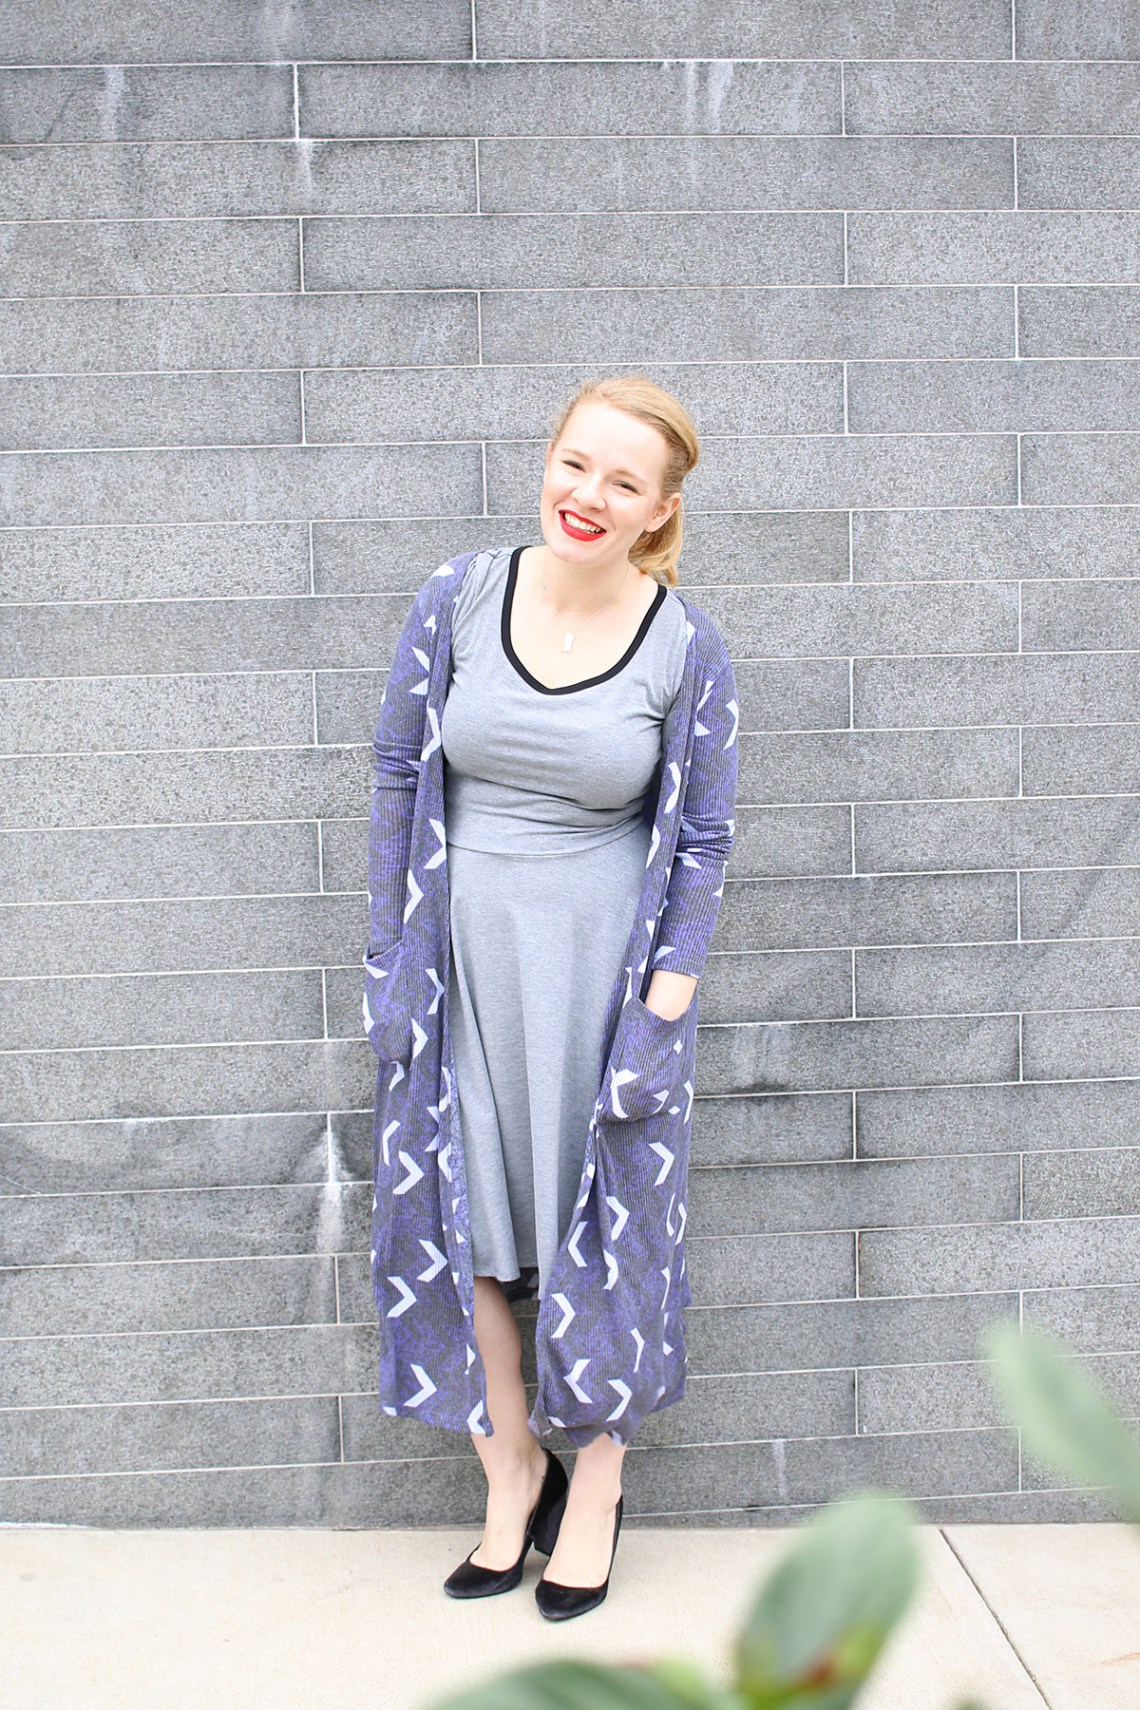 LuLaRoe Nicole Dress Styling